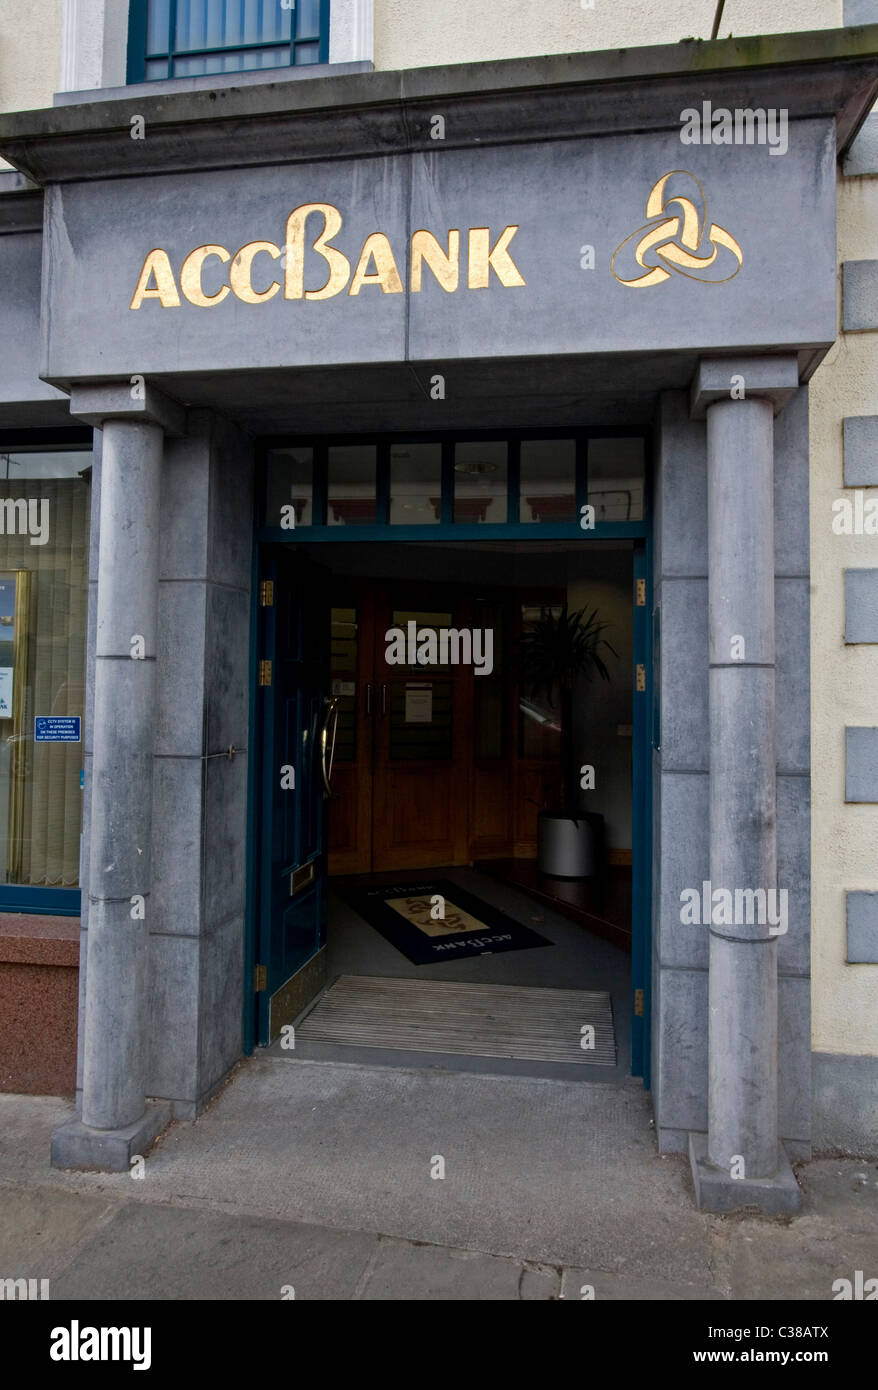 A Branch of the ACC Bank (Agricultural Credit Corporation), Roscommon, West of Ireland - Stock Image